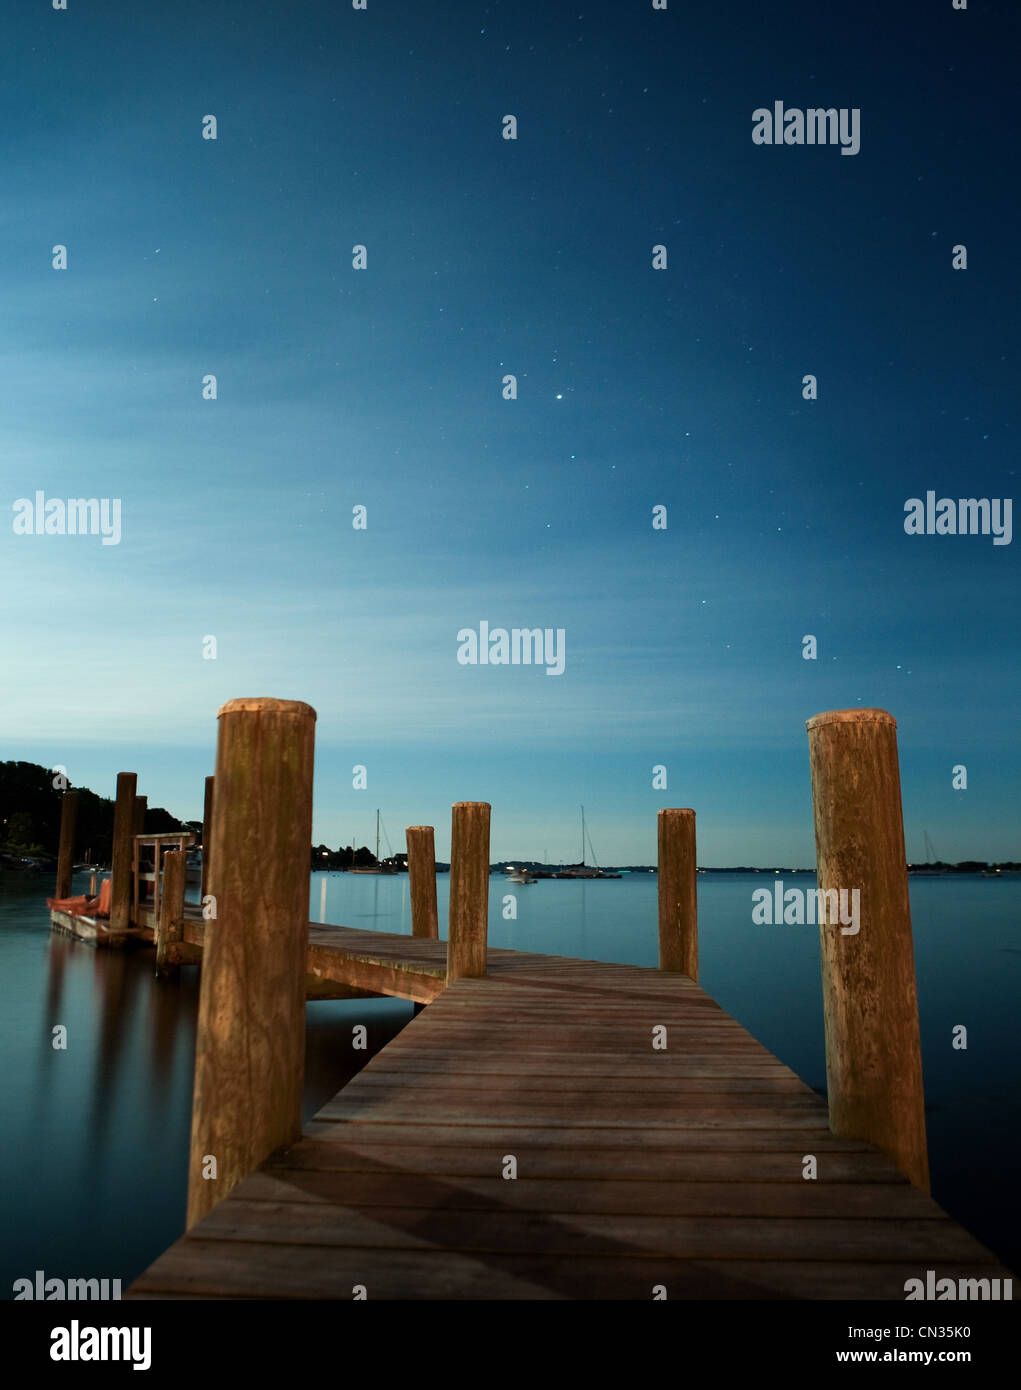 Wooden jetty - Stock Image